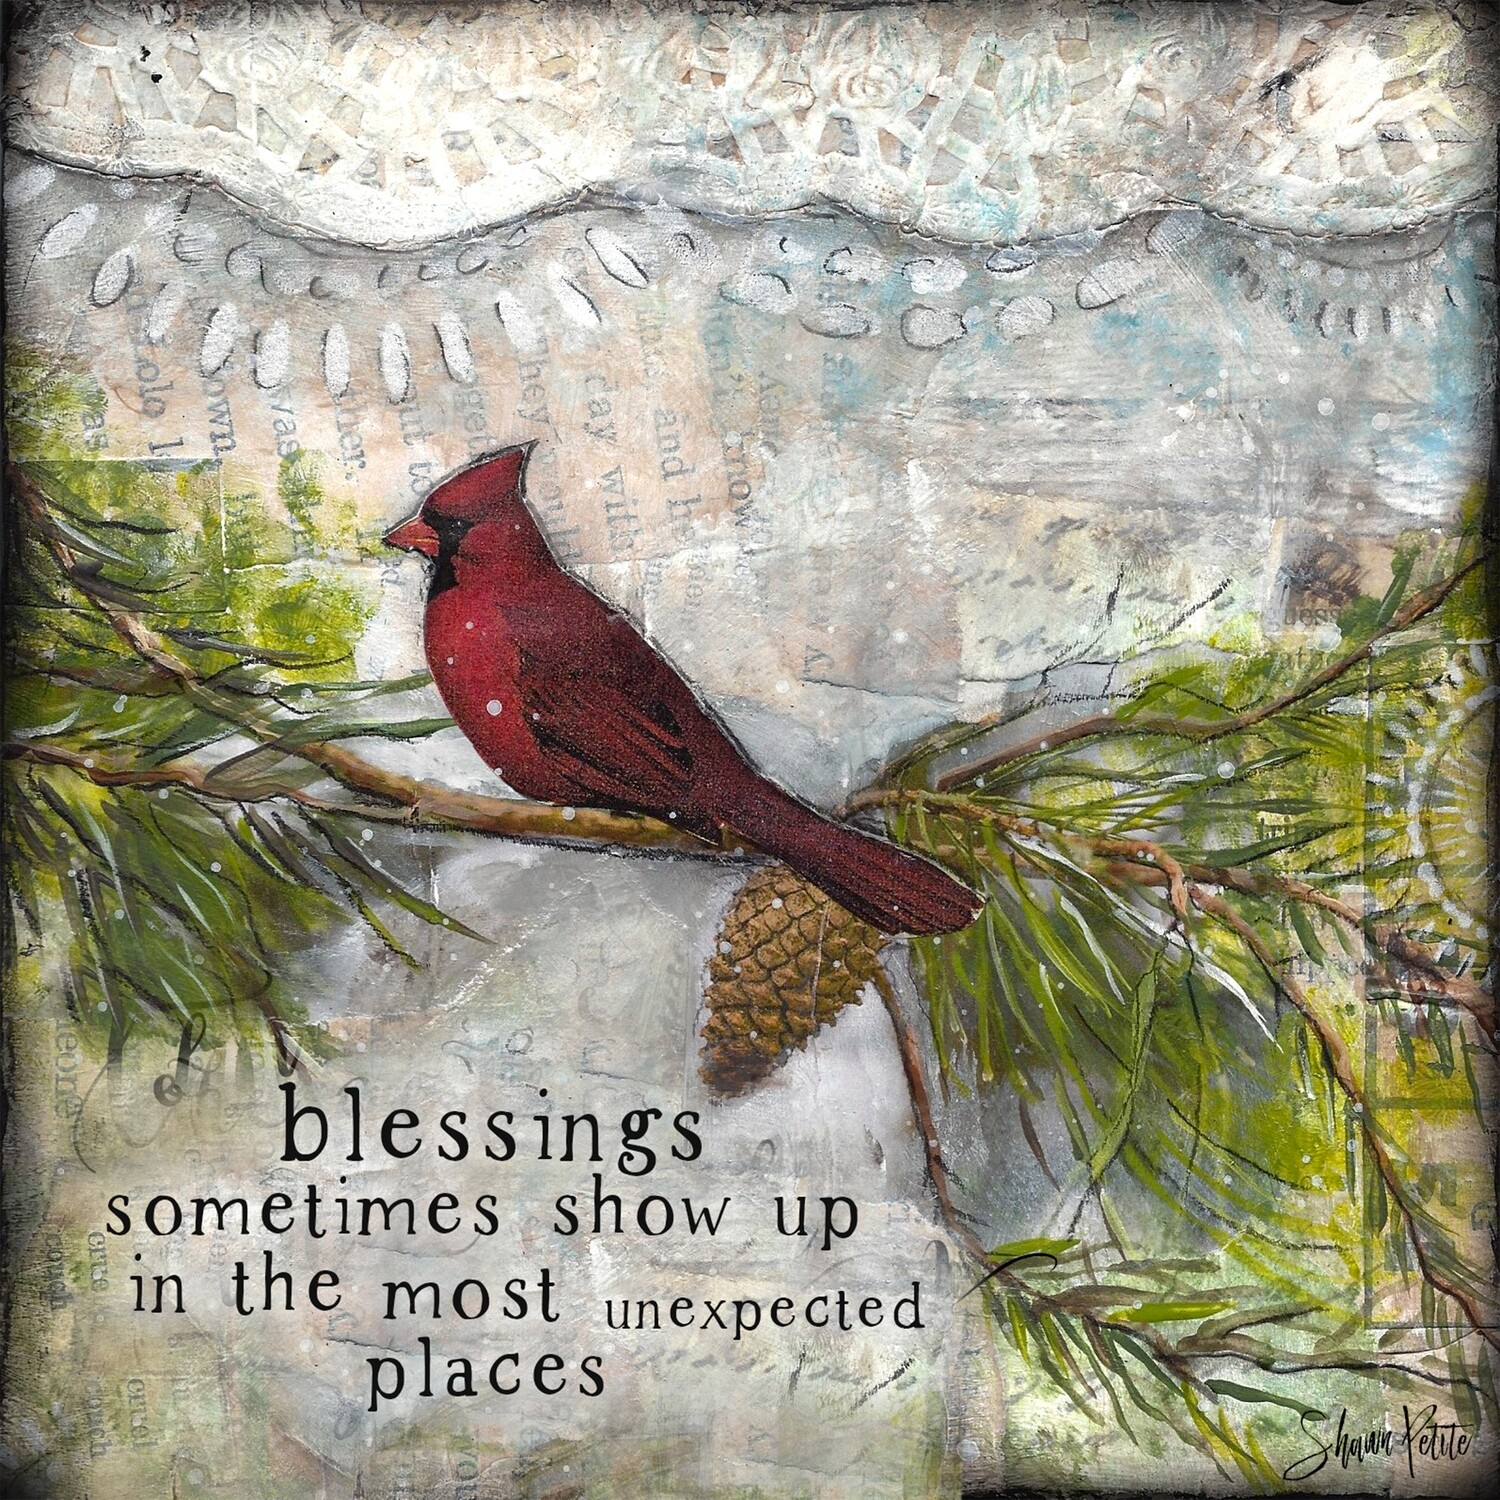 """Blessings sometimes show up in the most unexpected places"" Print on Wood 4x4 Overstock"